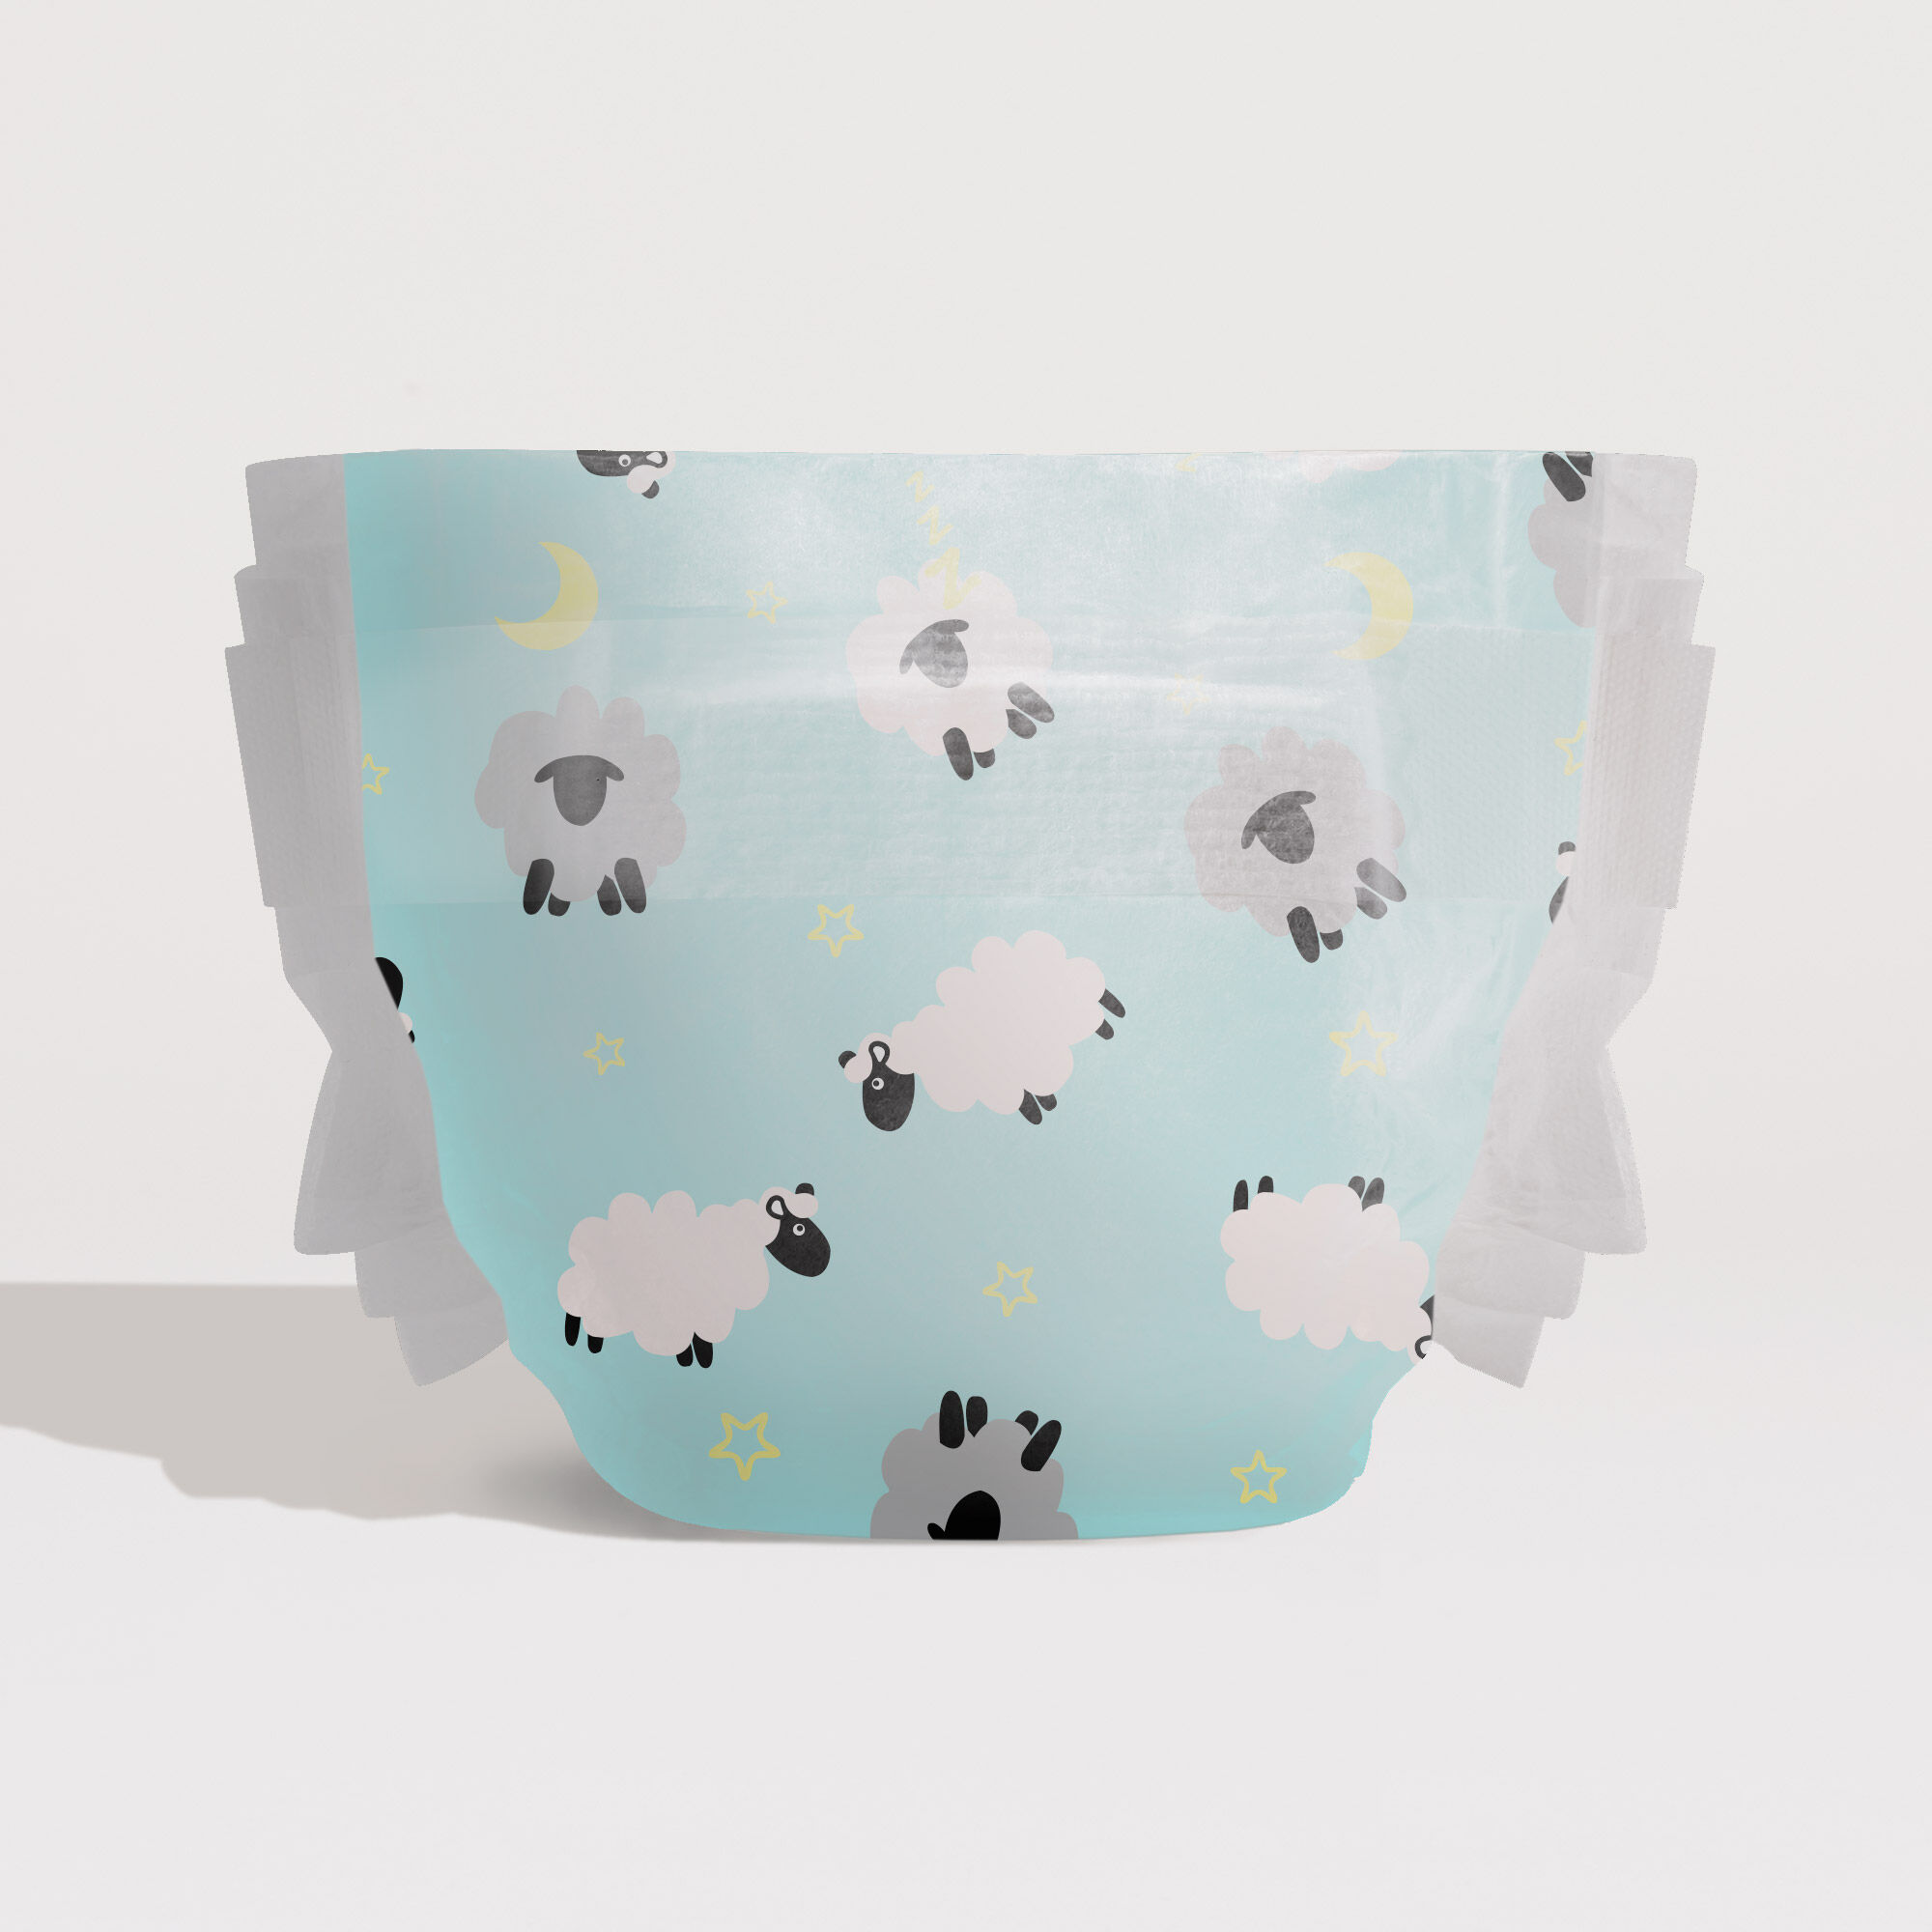 Sleepy Sheep Printed Diaper